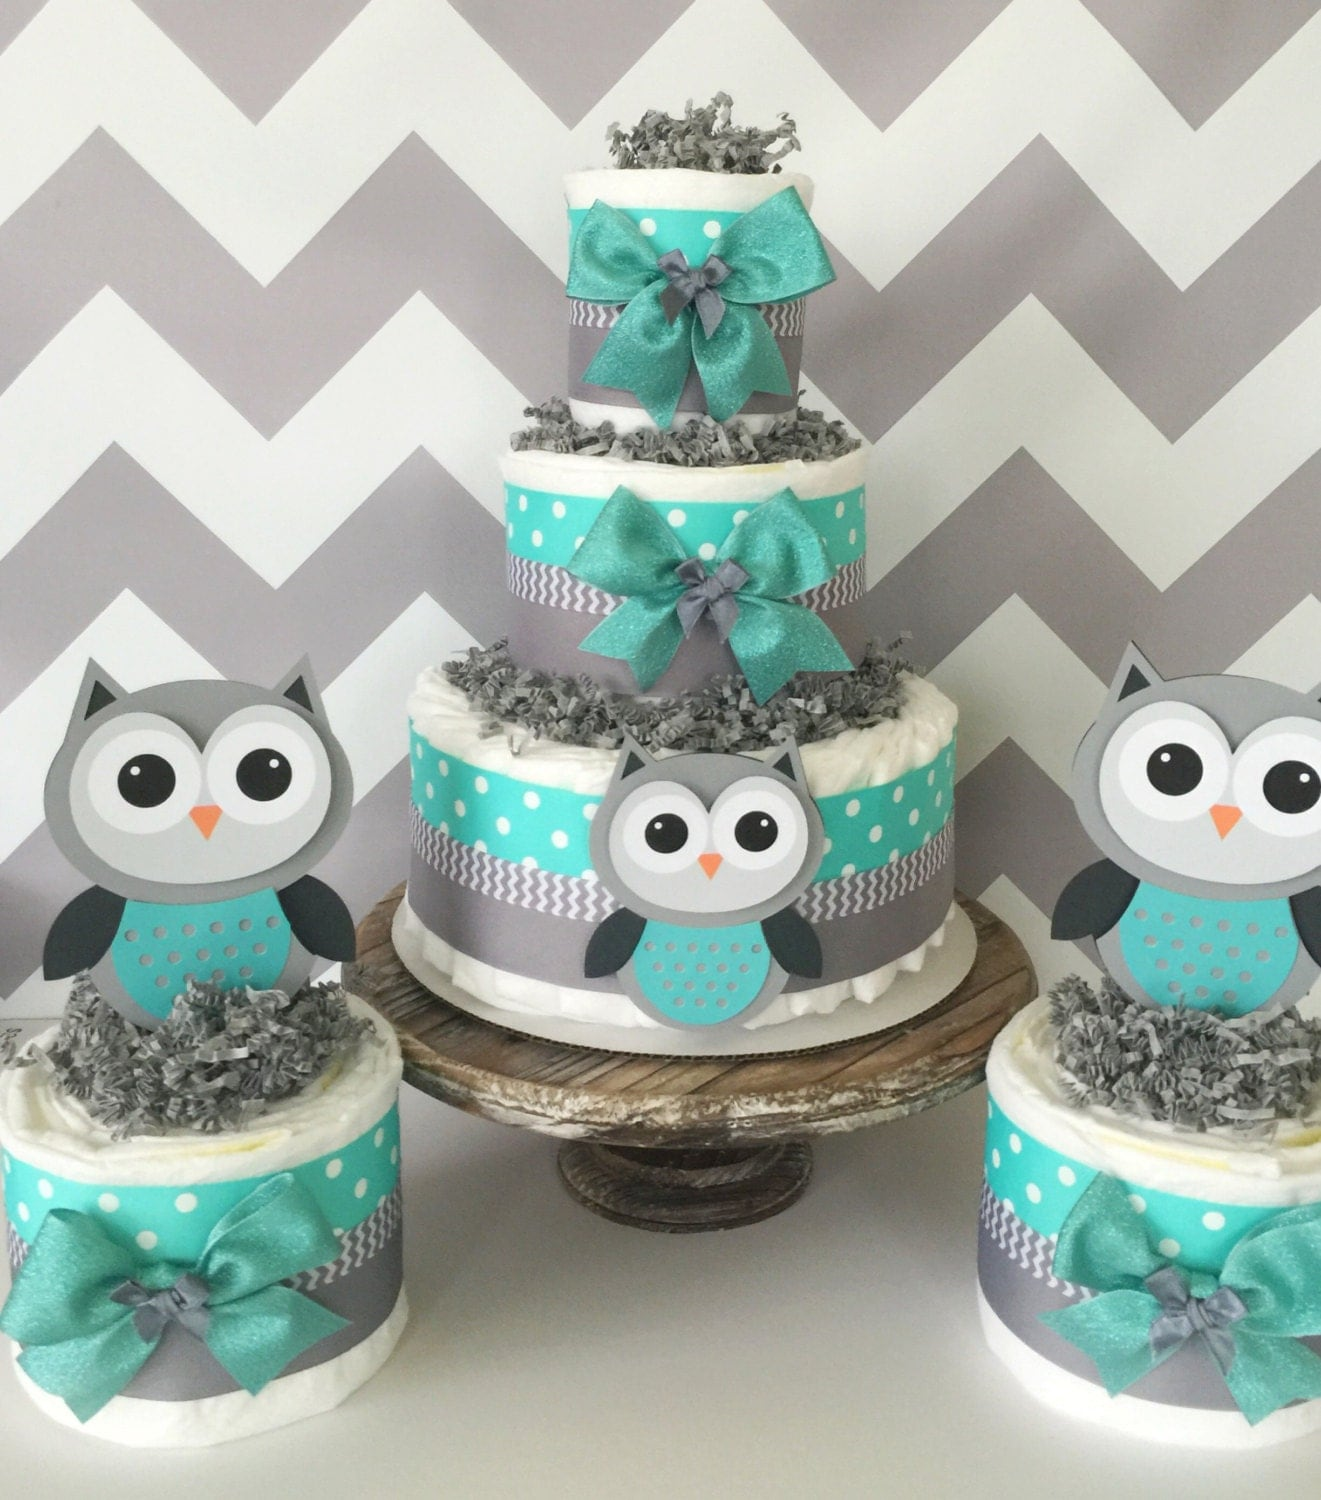 Owl Baby Shower Supplies: SET OF 3 Owl Diaper Cakes In Turqoise/Teal Gray And White